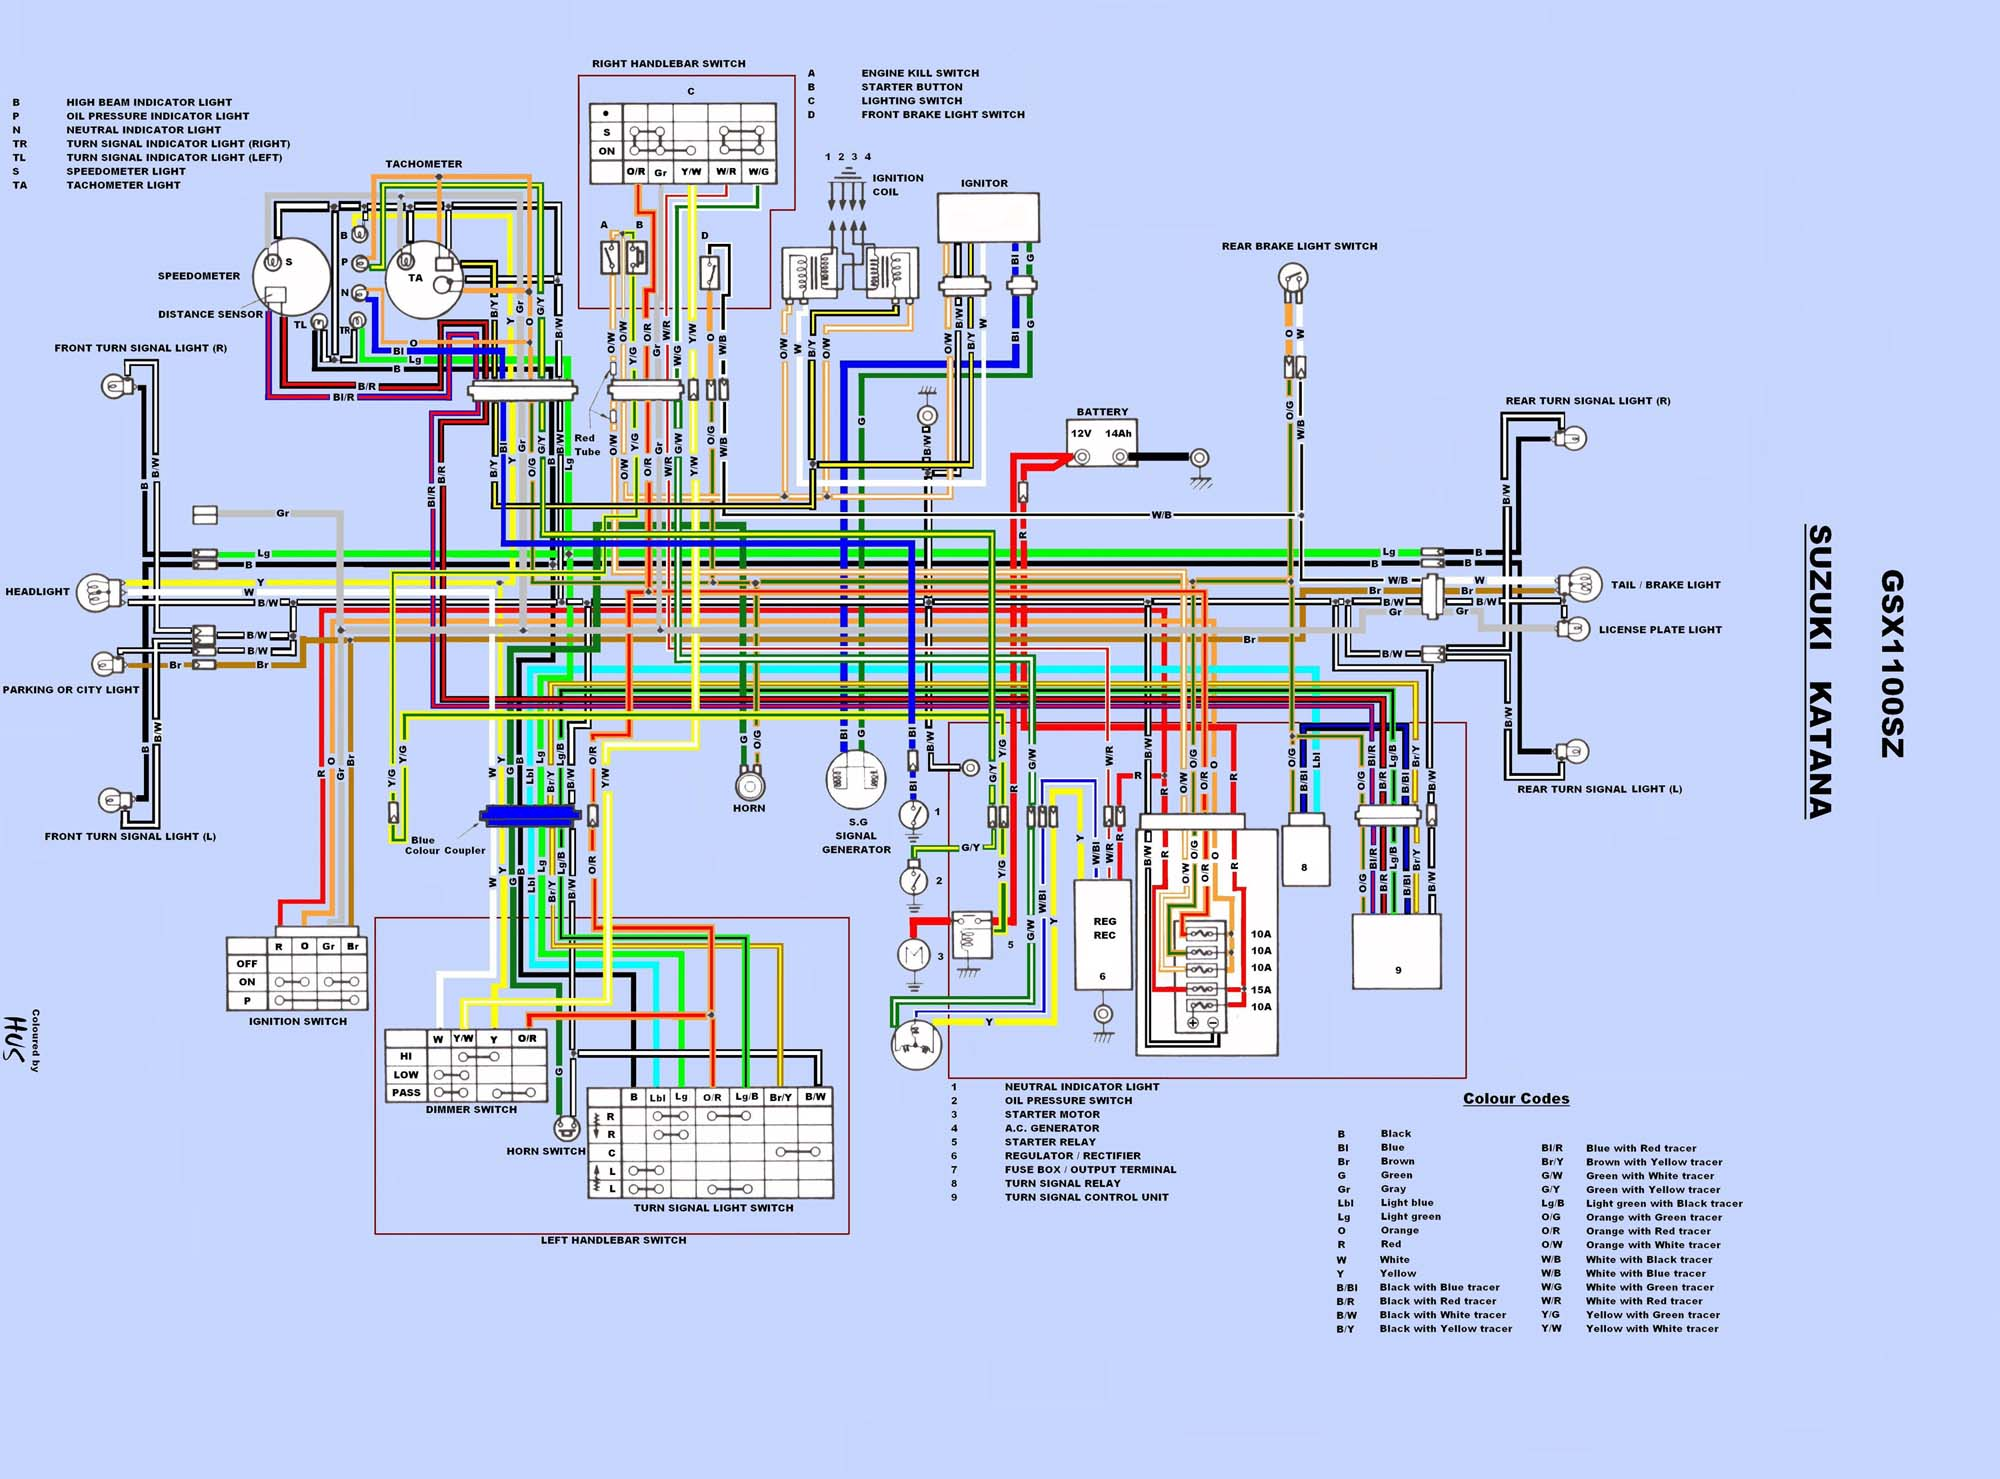 wiring diagram suzuki carry 1000 wiring diagramwiring diagram suzuki carry 1000 fuse box \\u0026 wiring diagramwiring diagram suzuki carry 1000 wiring